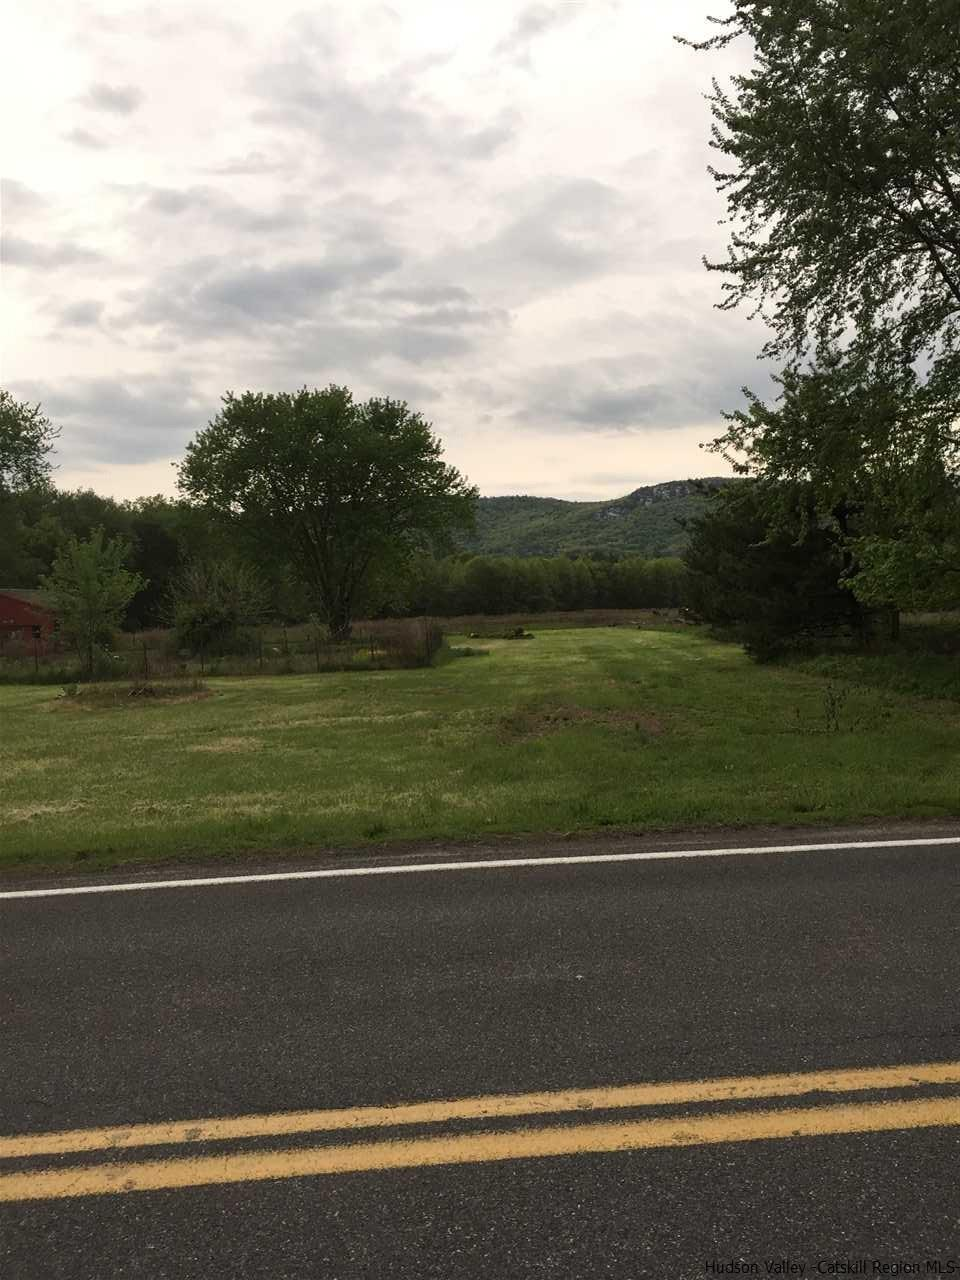 Farm / Agriculture for Sale at 217 Springtown Road New Paltz, New York 12561 United States